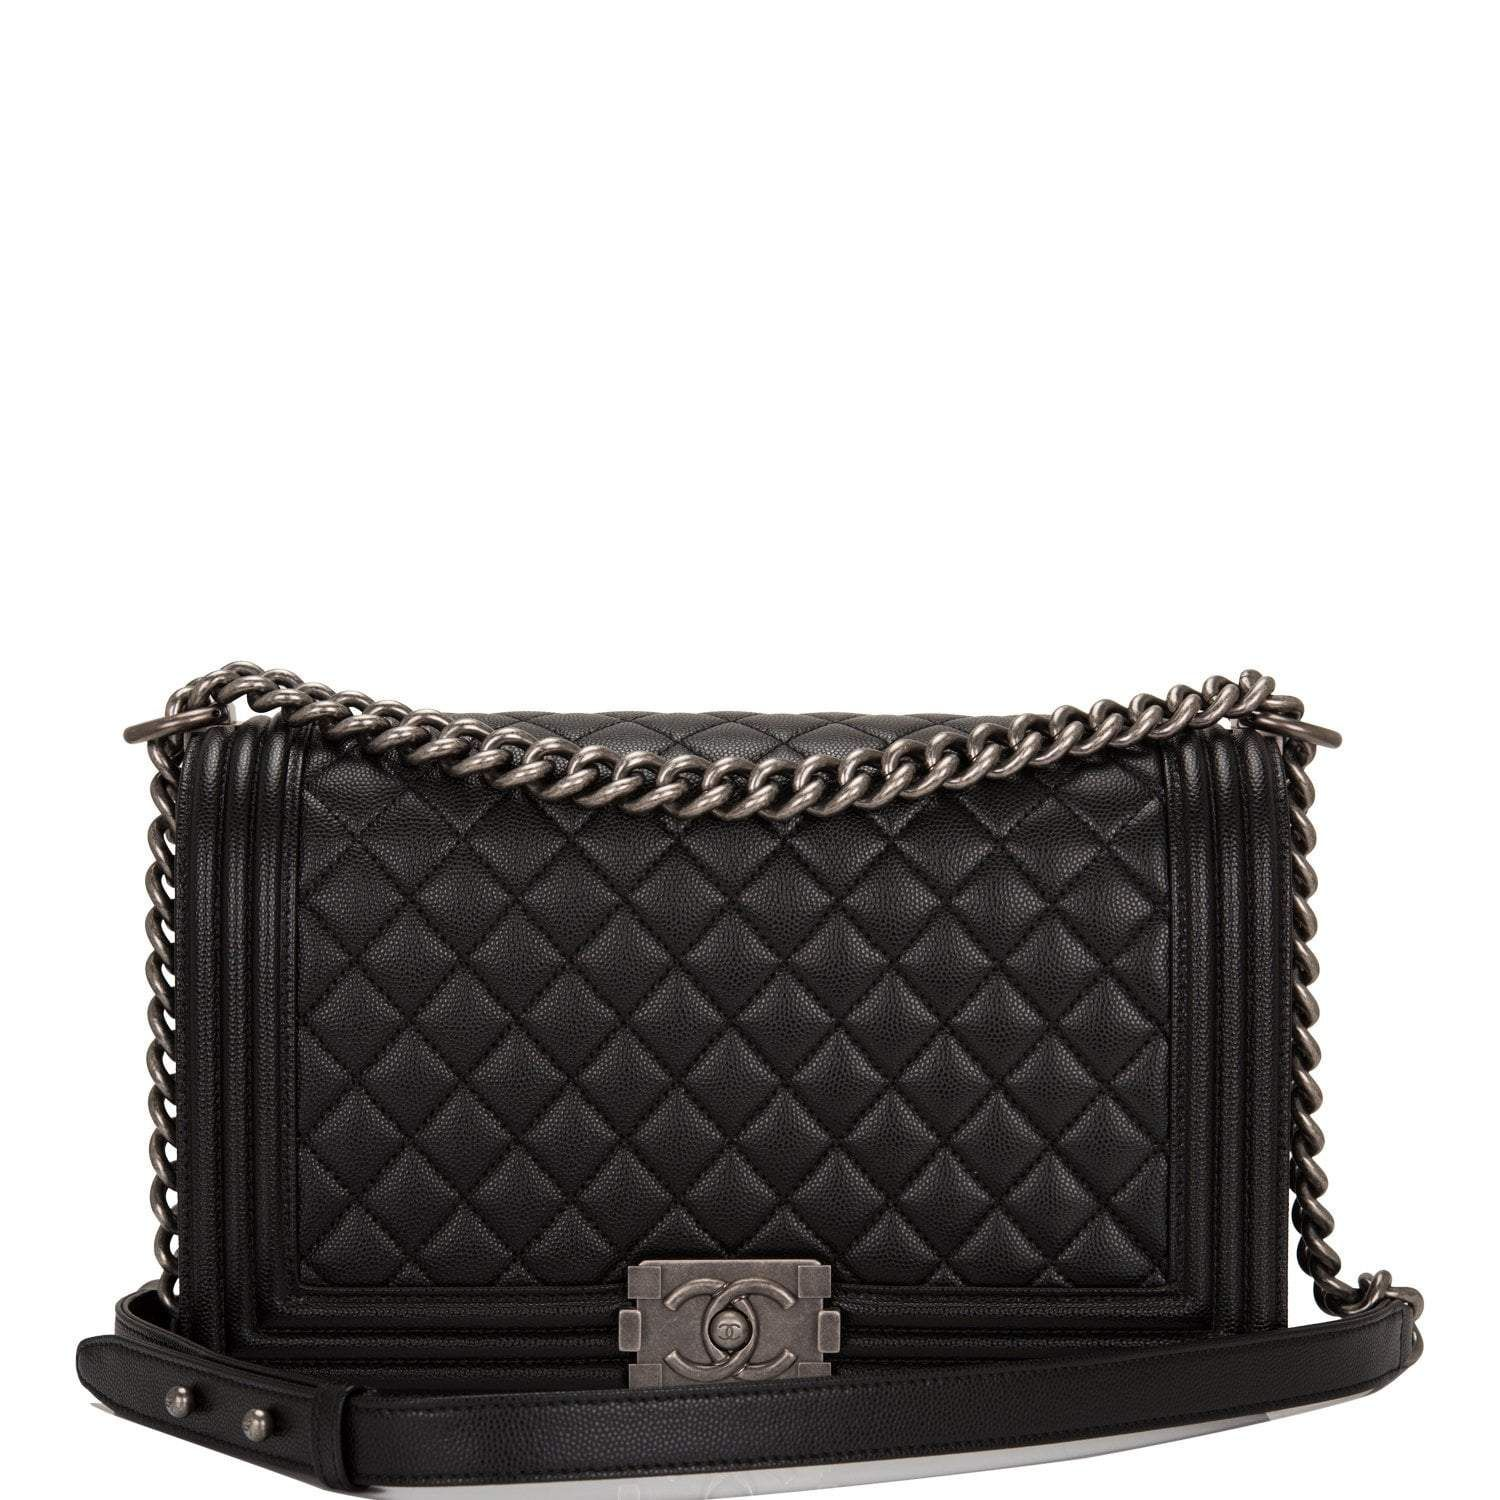 Chanel Black Quilted Caviar Jumbo Classic Double Flap Bag Gold Hardware Chanel Bag Classic Black Leather Handbags Leather Shoulder Handbags